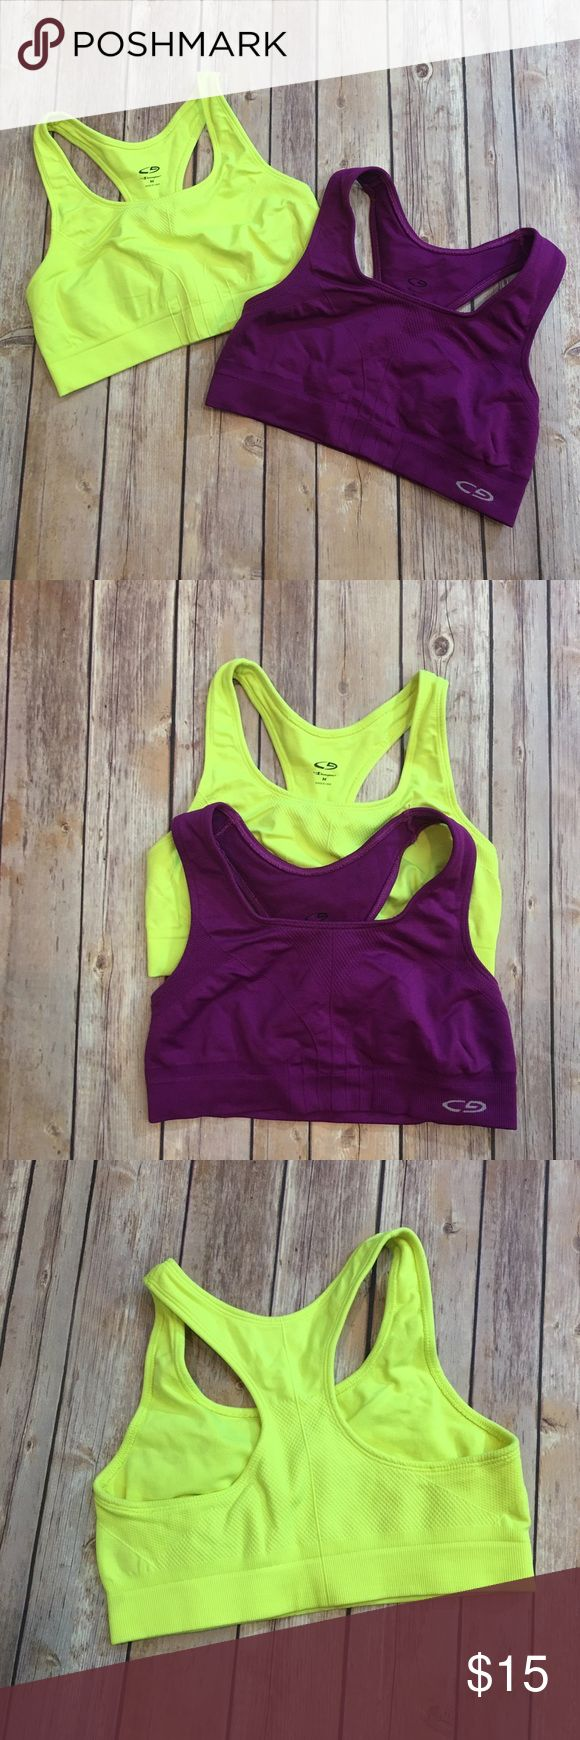 ❗3 for $20❗2 C9 By Champion Sports Bras In excellent condition Champion Intimates & Sleepwear Bras